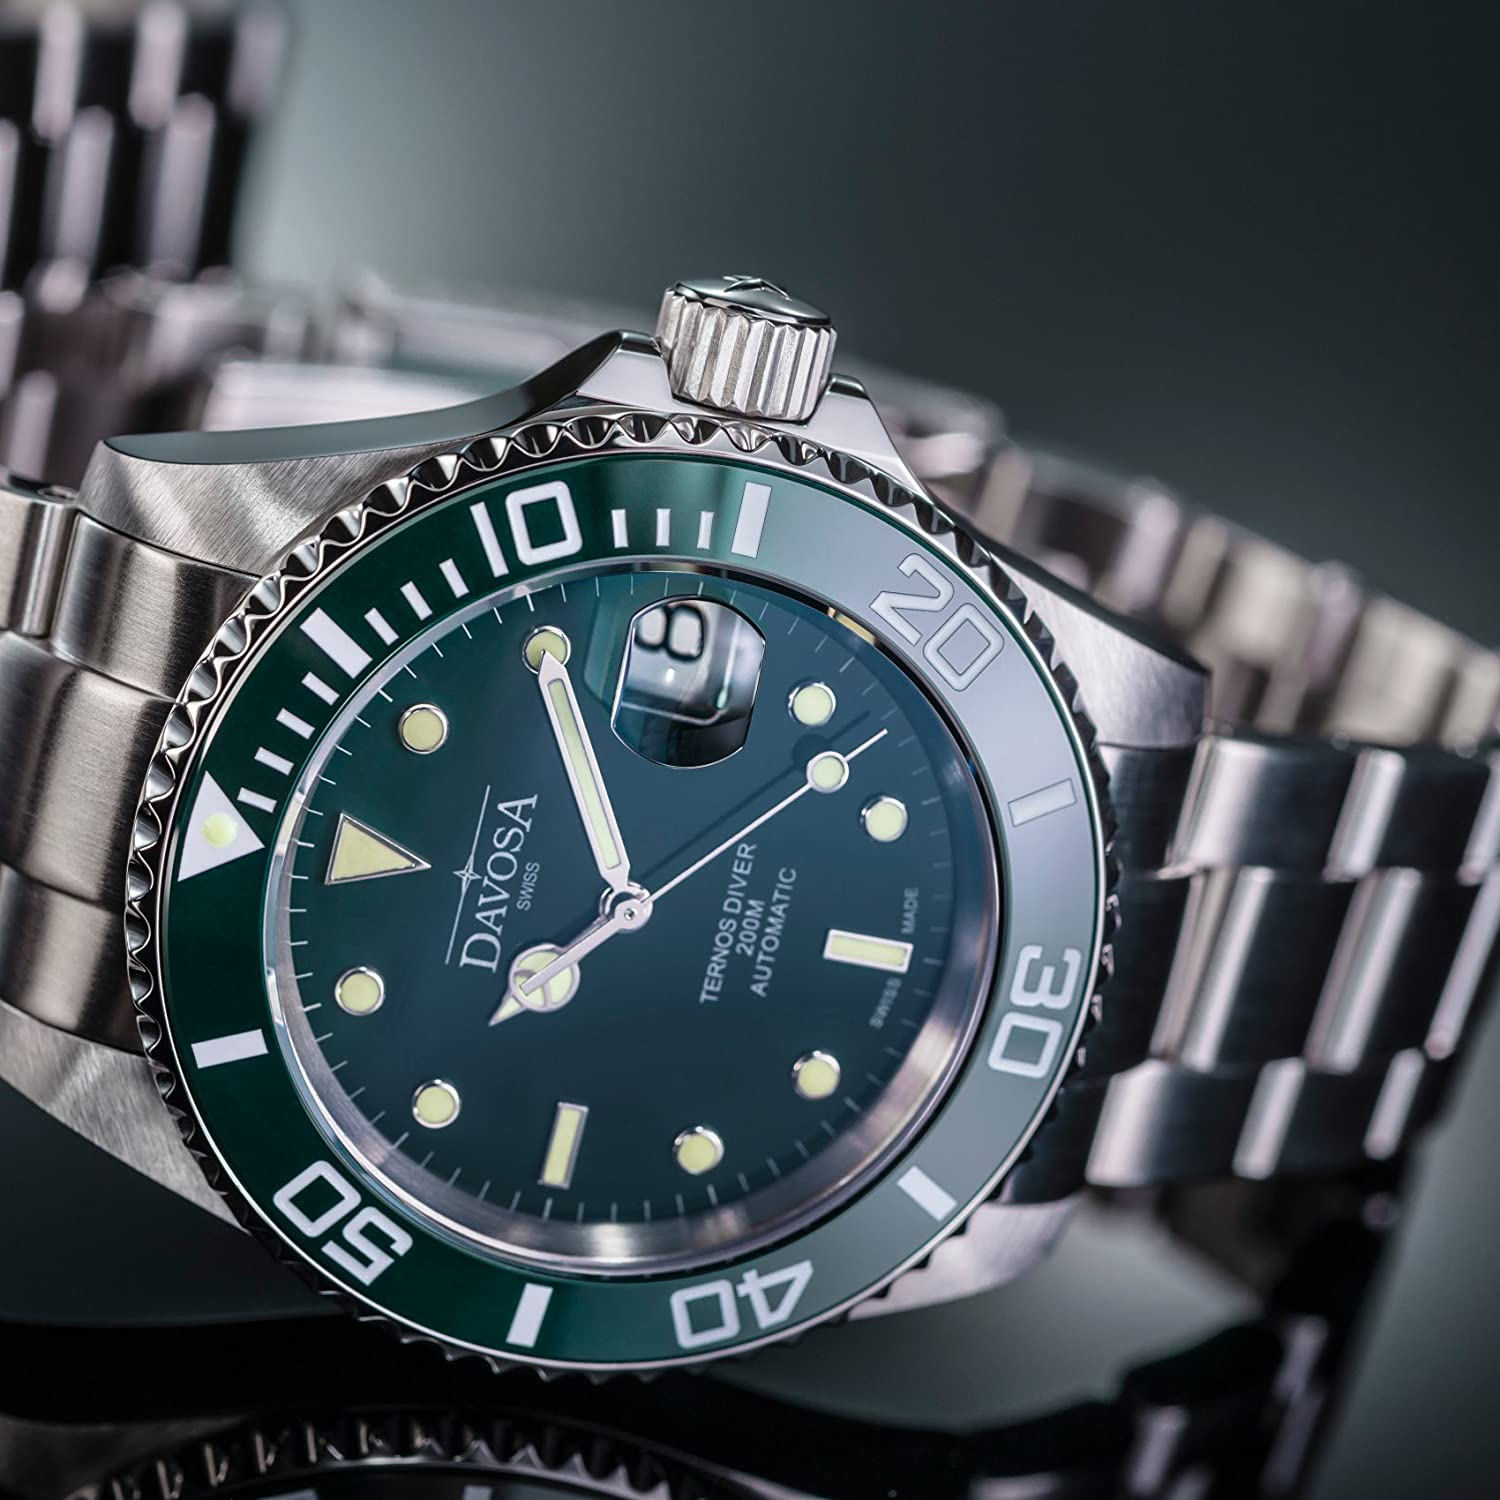 6b8ff4c84 Amazon.com: Davosa Swiss Made Dive Watch for Men - Ternos Ceramic  Professional Automatic Watch with Analog Display & Unidirectional Luxury  Bezel (16155570): ...